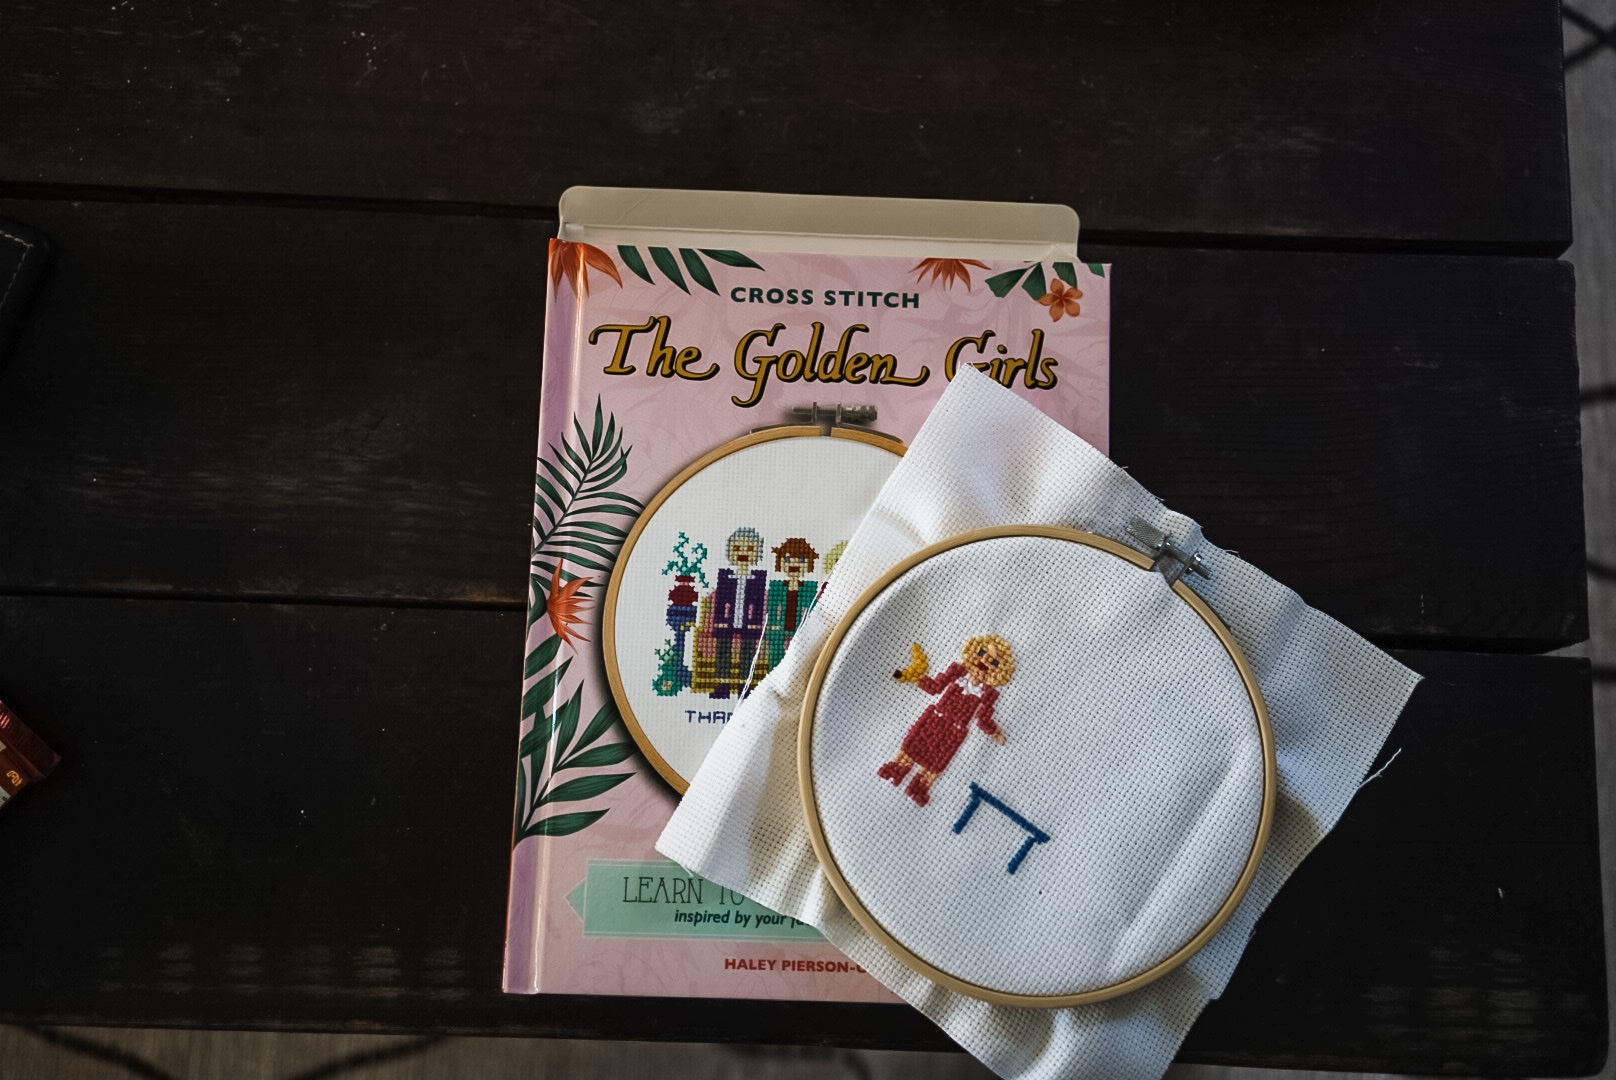 Crossstitch picture of Golden Girls.